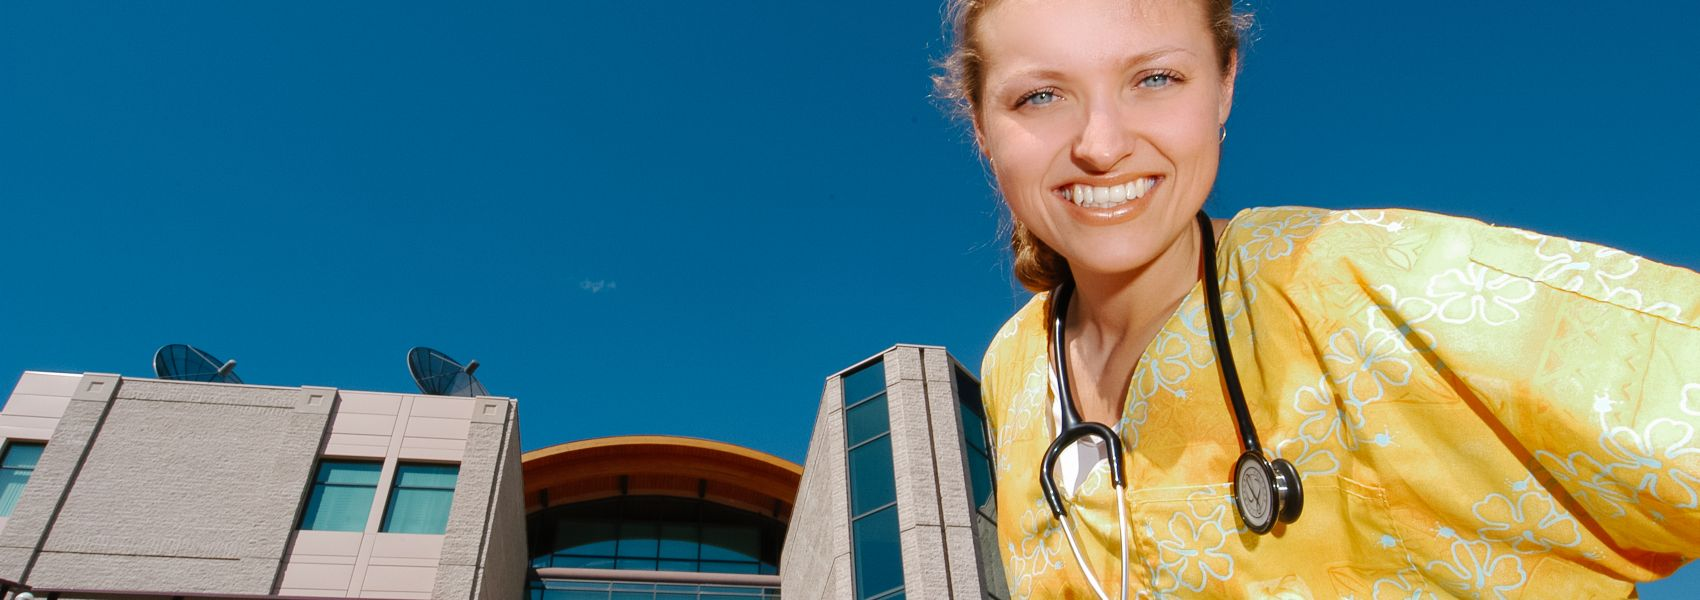 Nursing student standing in front of a UNBC building